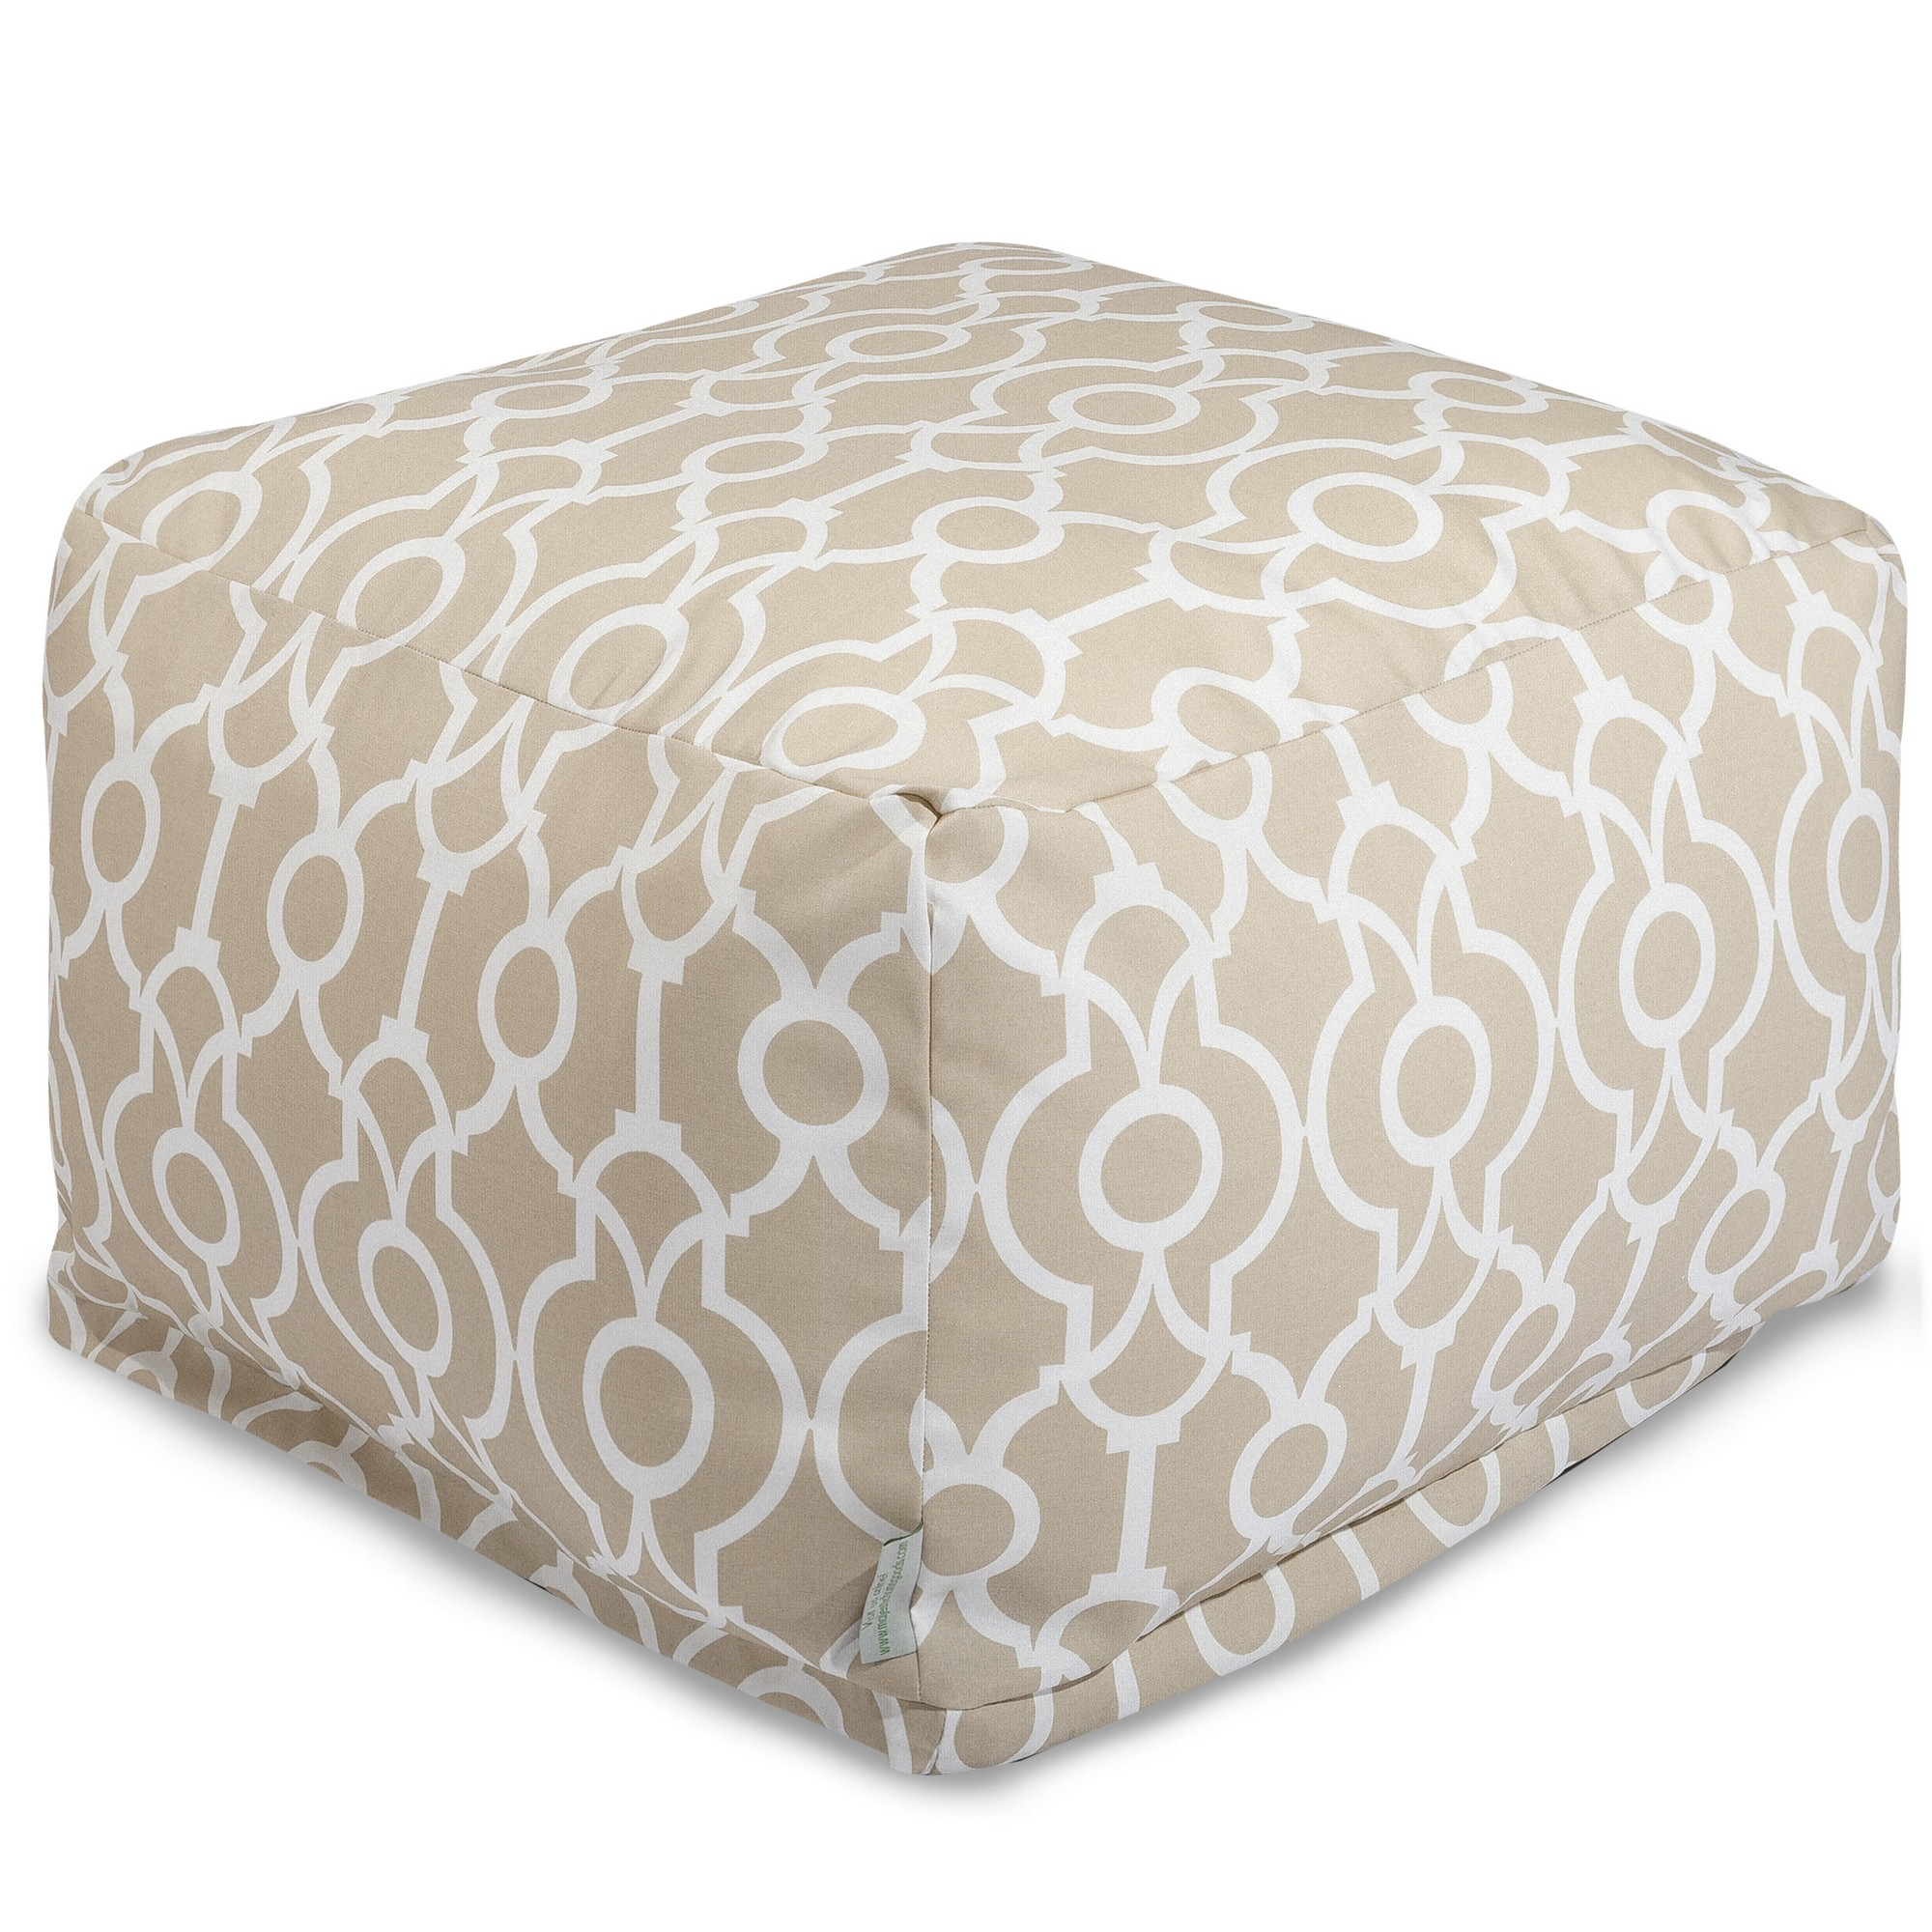 Majestic Home Goods Indoor Outdoor Treated Polyester Navy Athens Ottoman Pouf